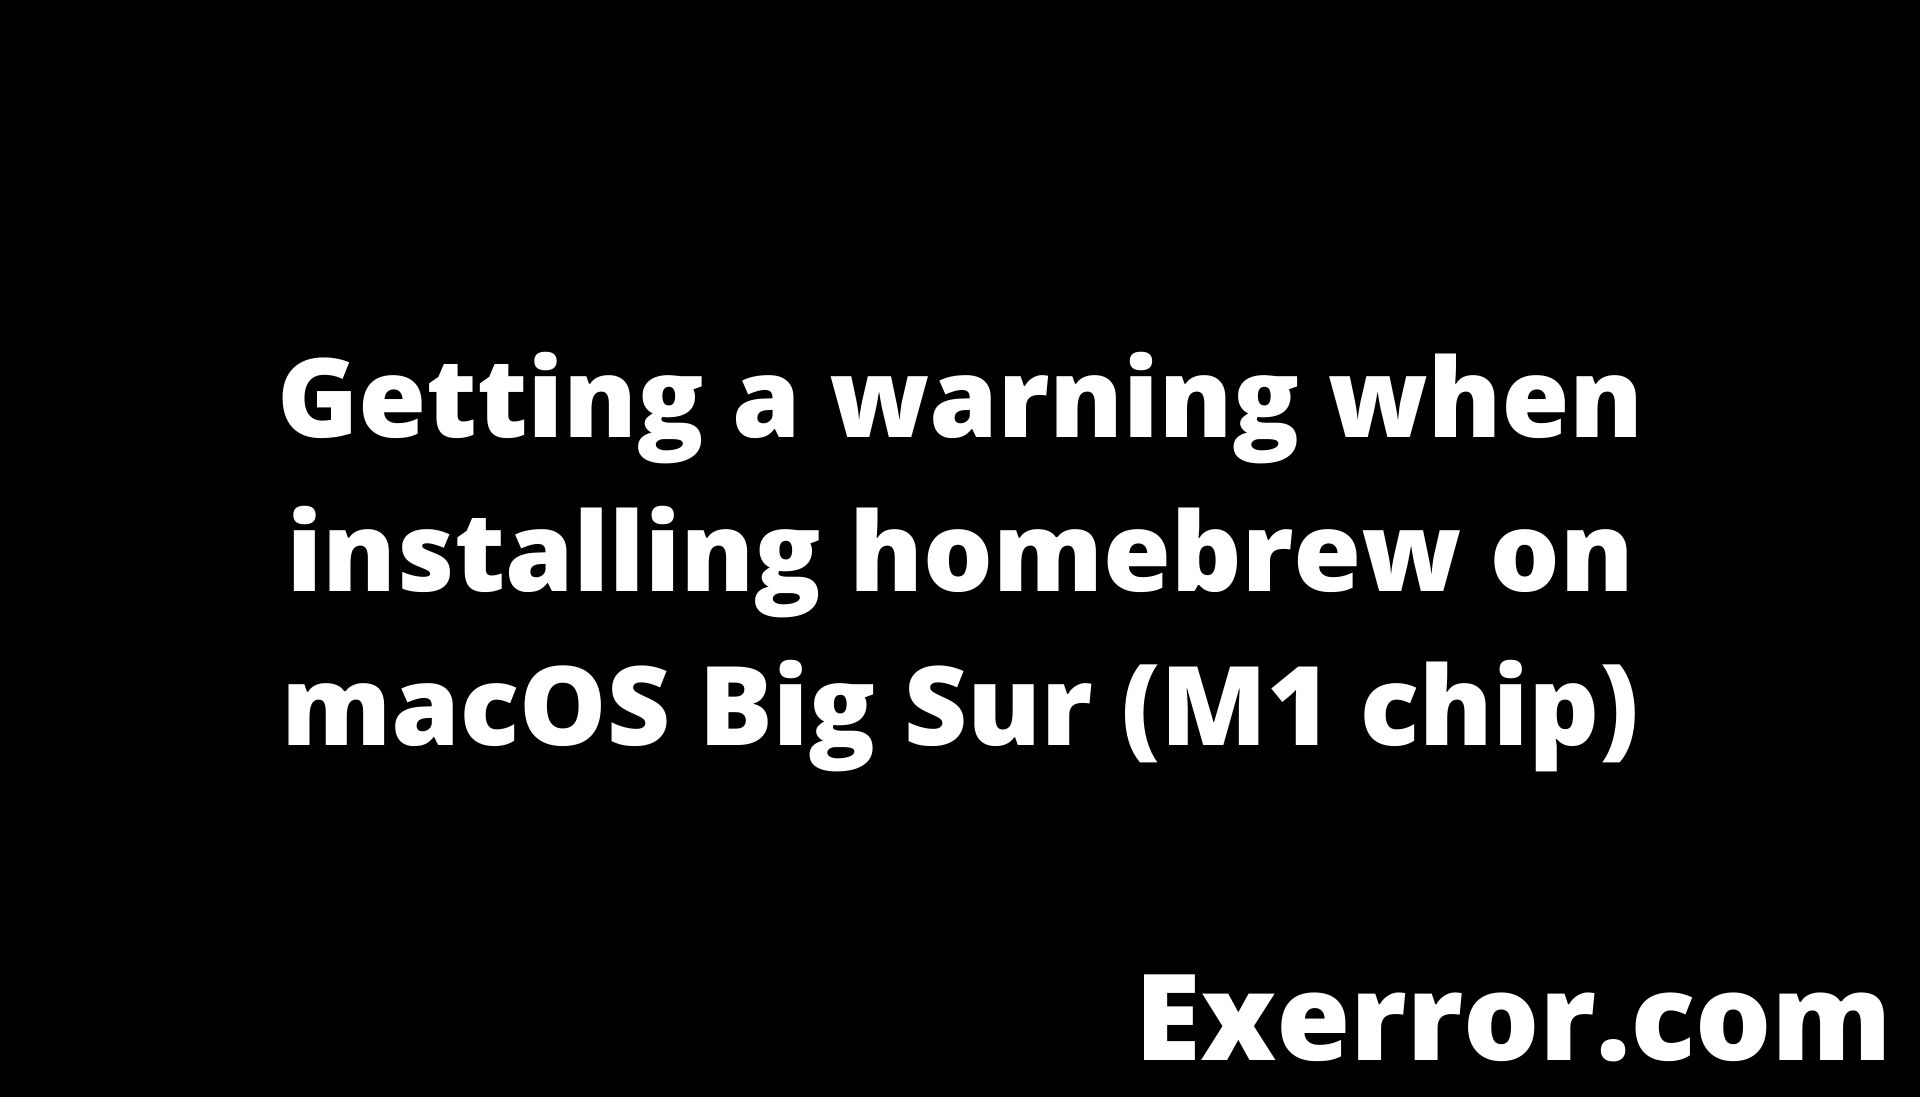 Getting a warning when installing homebrew on macOS Big Sur (M1 chip), Warning: /opt/homebrew/bin is not in your PATH.